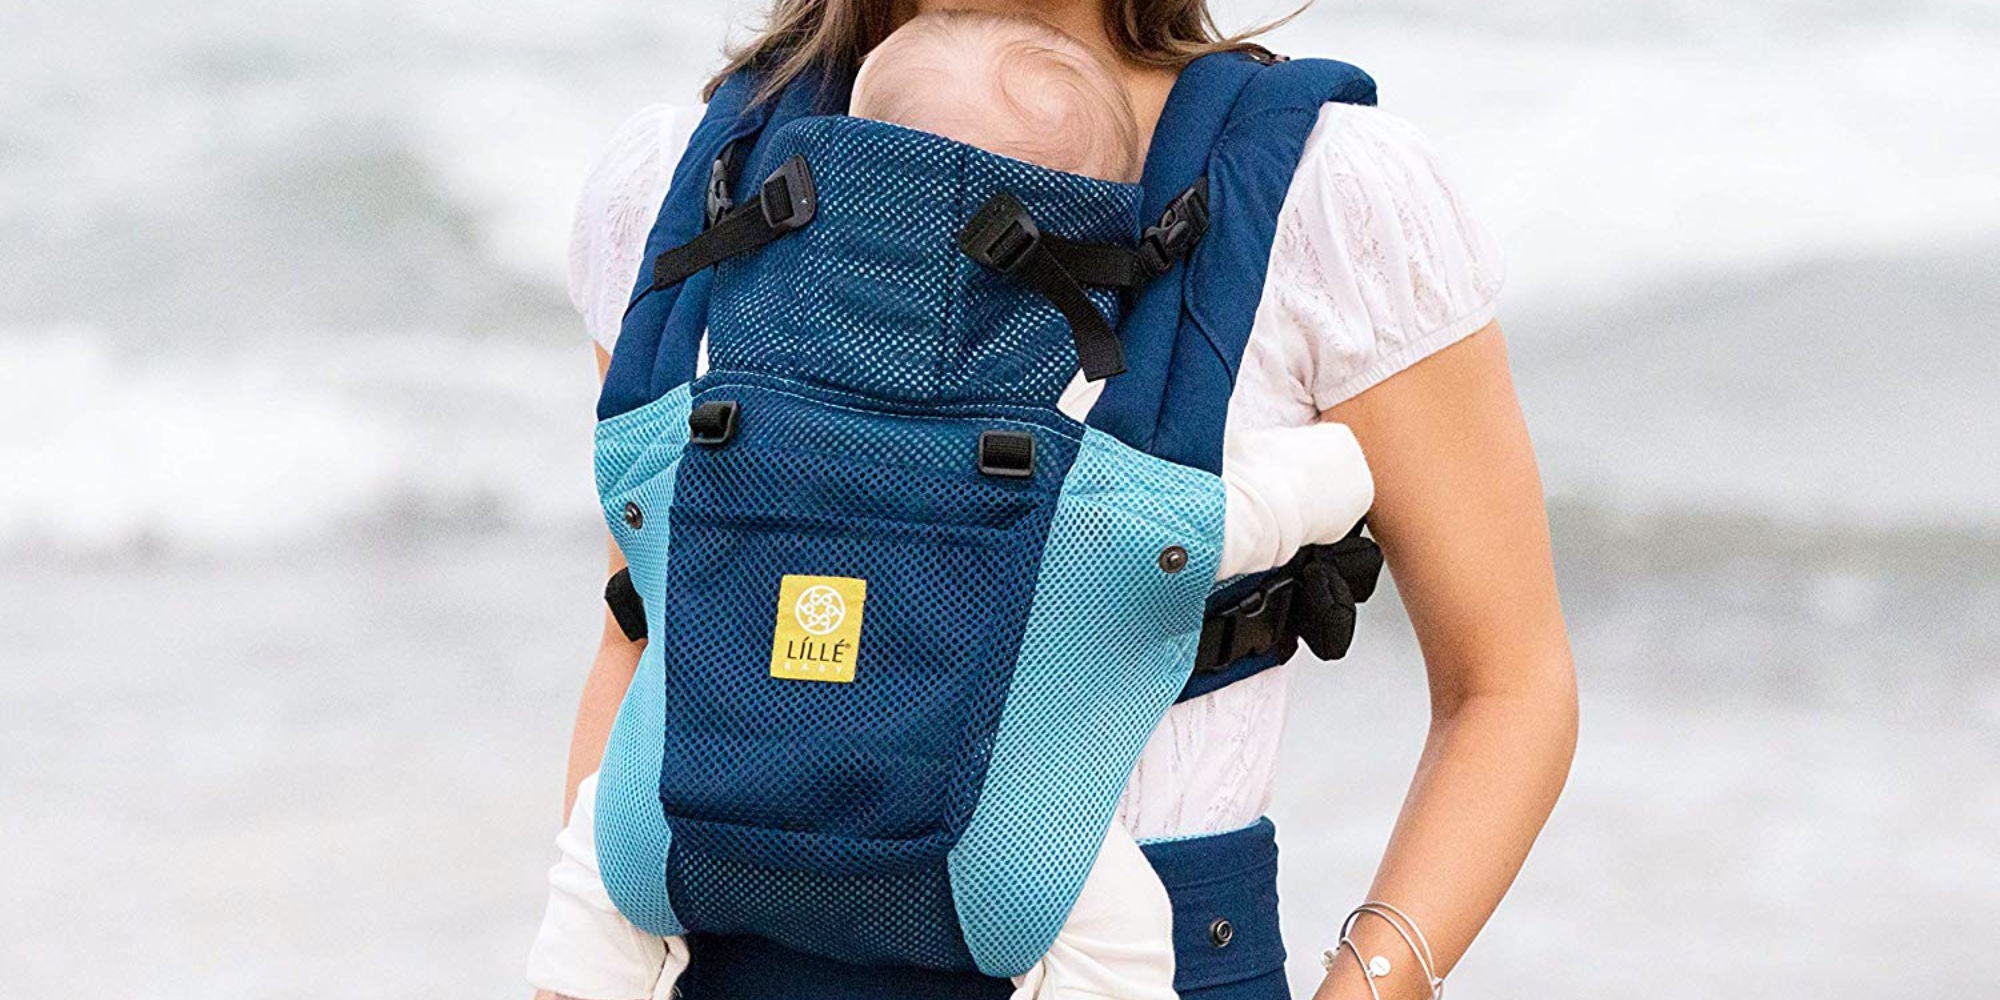 LILLEbaby child carriers can be yours at up to 50% off with deals from $20 - 9to5Toys